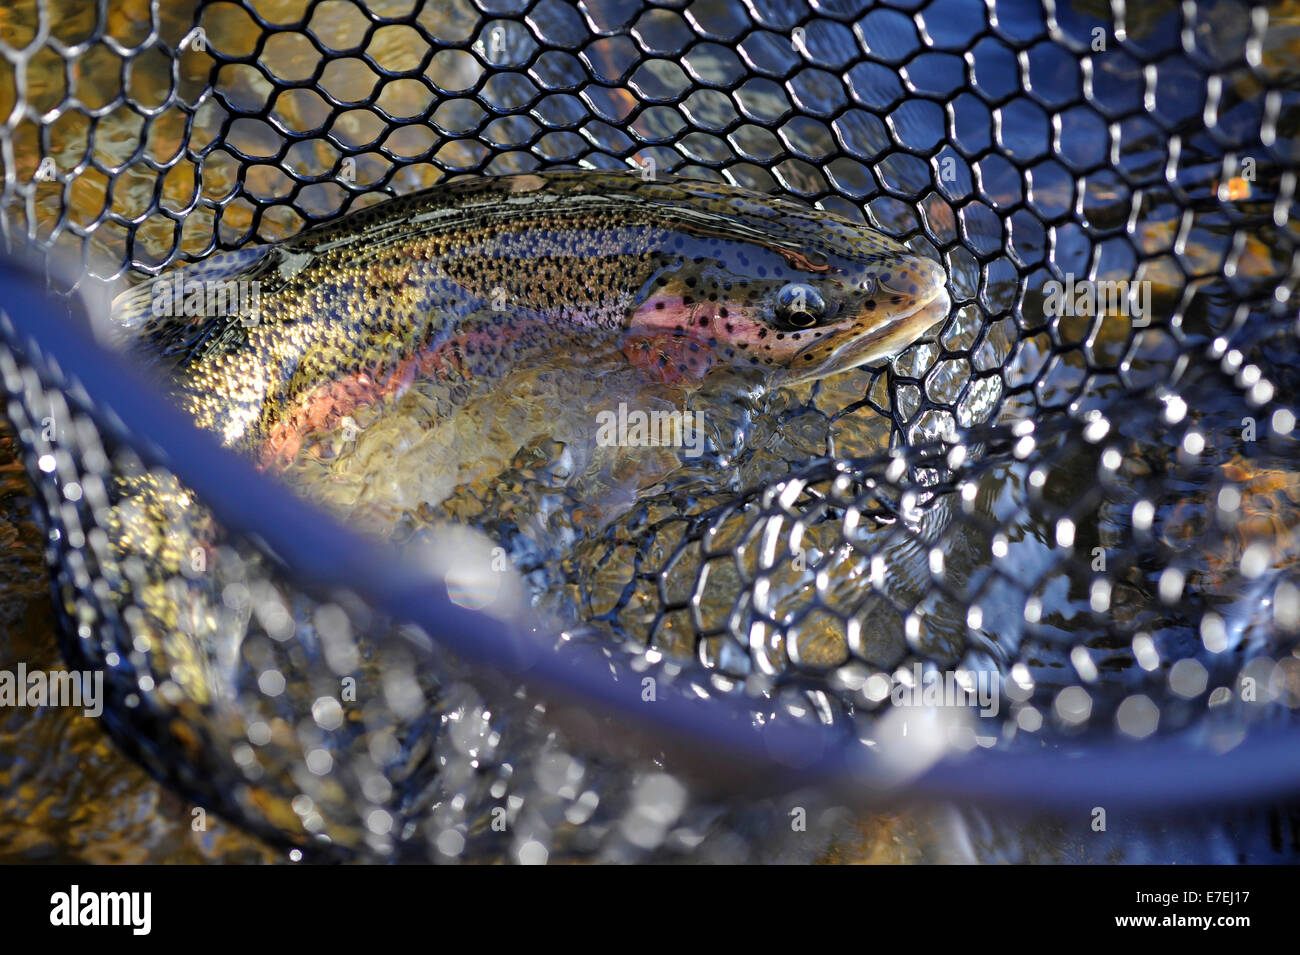 Rainbow trout caught on Deep Creek on the Western Kenai Peninsula, Alaska September 2009.  Flowing into Cook Inlet - Stock Image